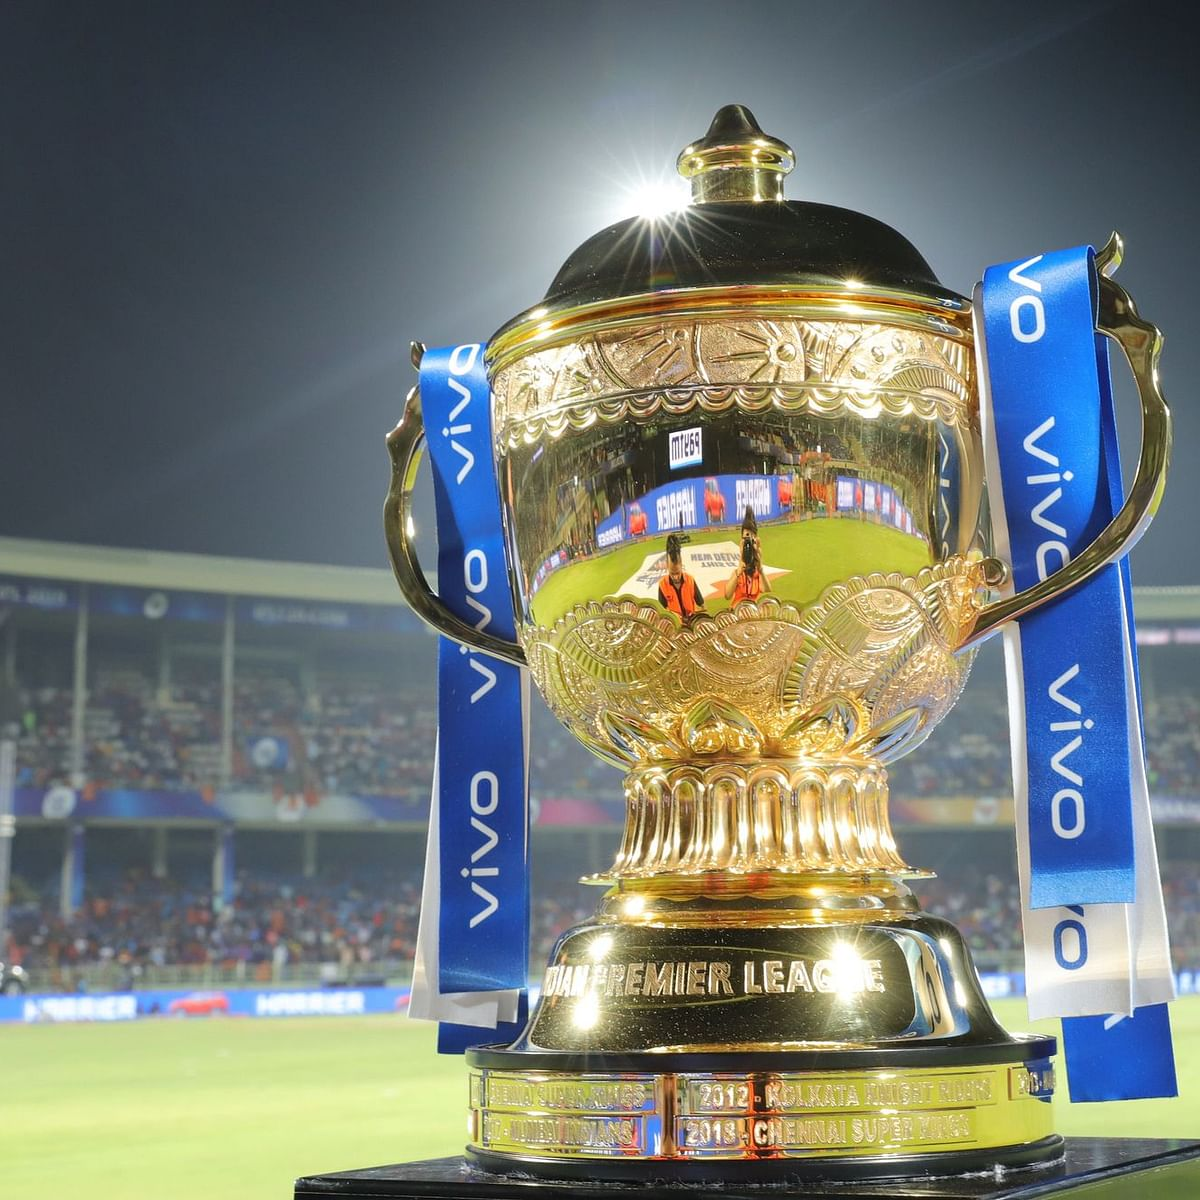 BCCI invites expression of Interest for IPL 2020 title sponsorship rights